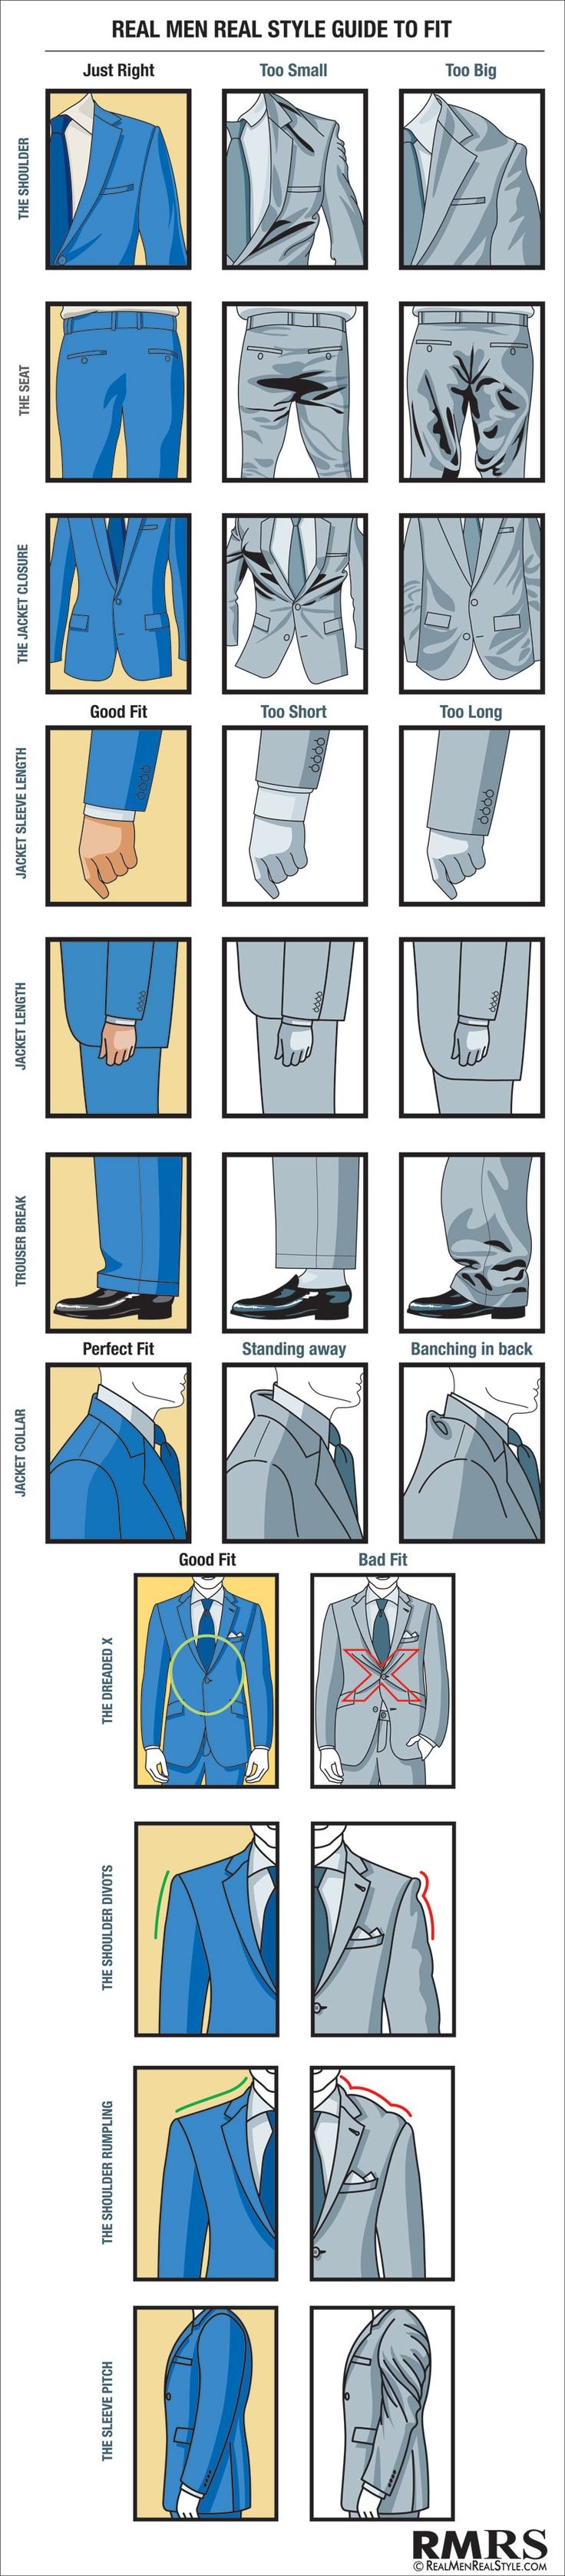 How A Suit Should Fit - HUGE Detailed Graphic - Jacket Fit, Trouser Fit, All the fit areas you need to focus on when buying a quality men's suit or sports jacket.  #propersuit #fit #stylish #menswear #menstyle #clothing